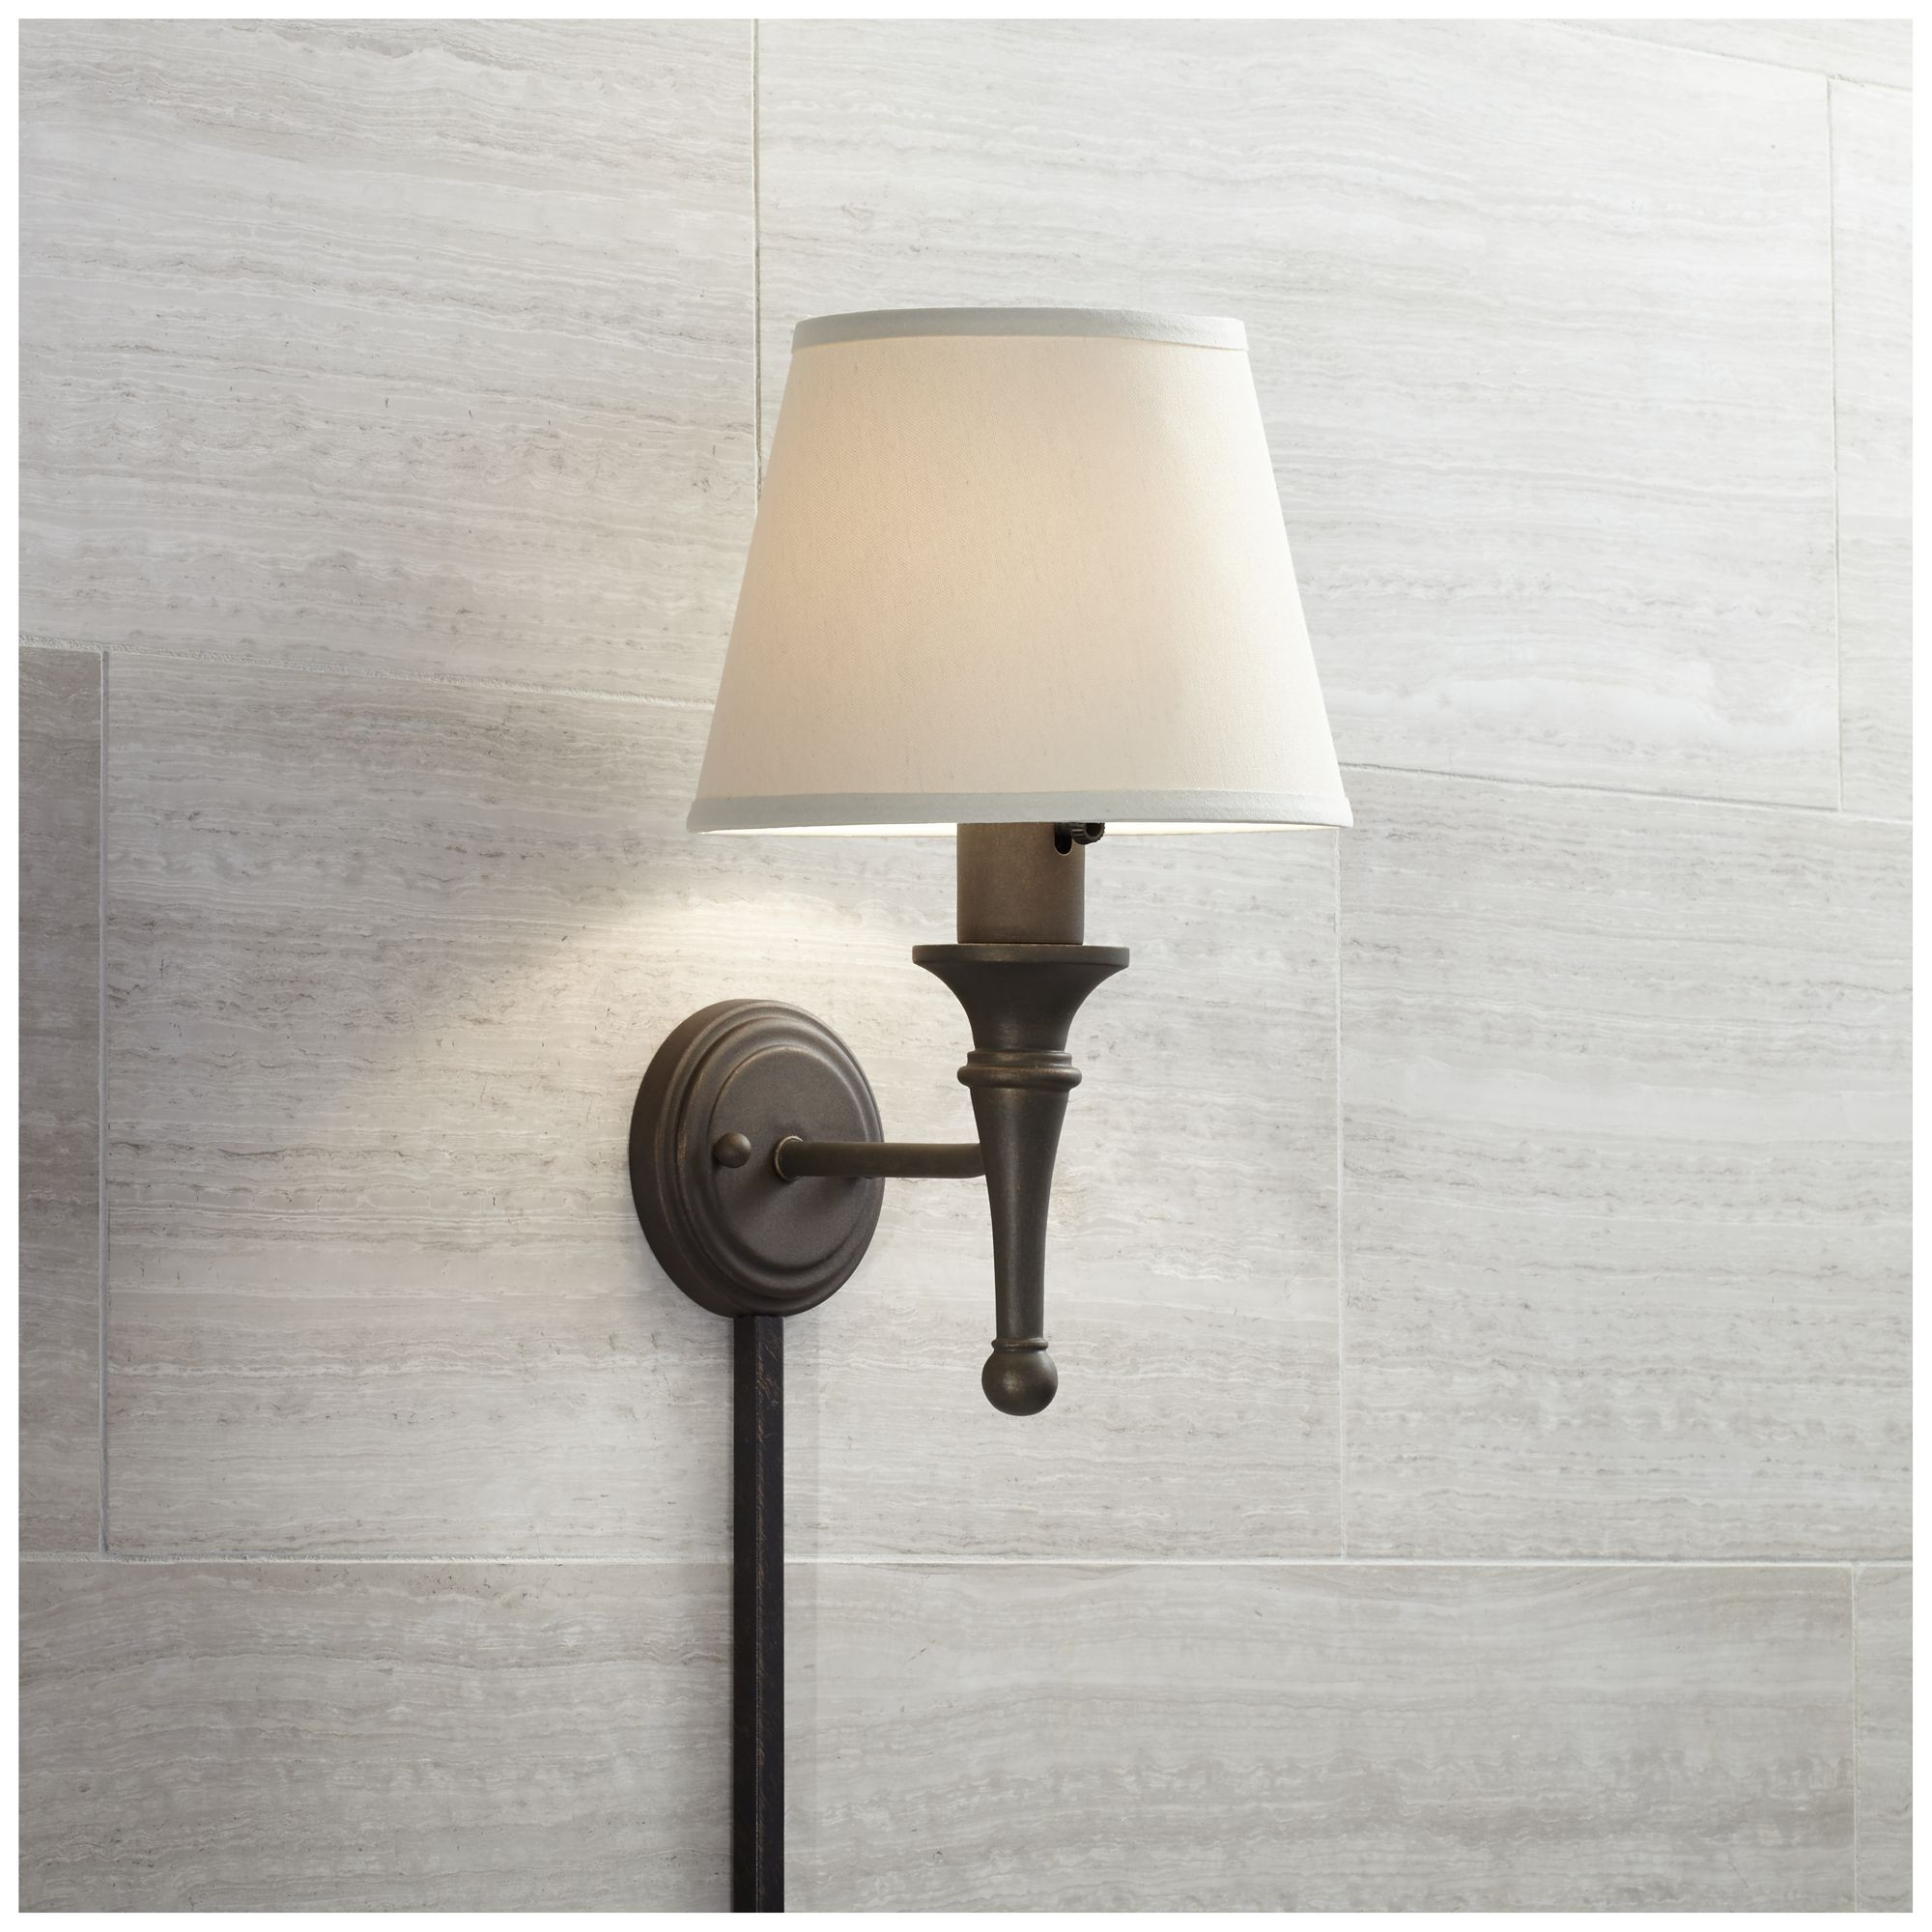 Ways by which plug in wall sconce with   cord cover can be installed